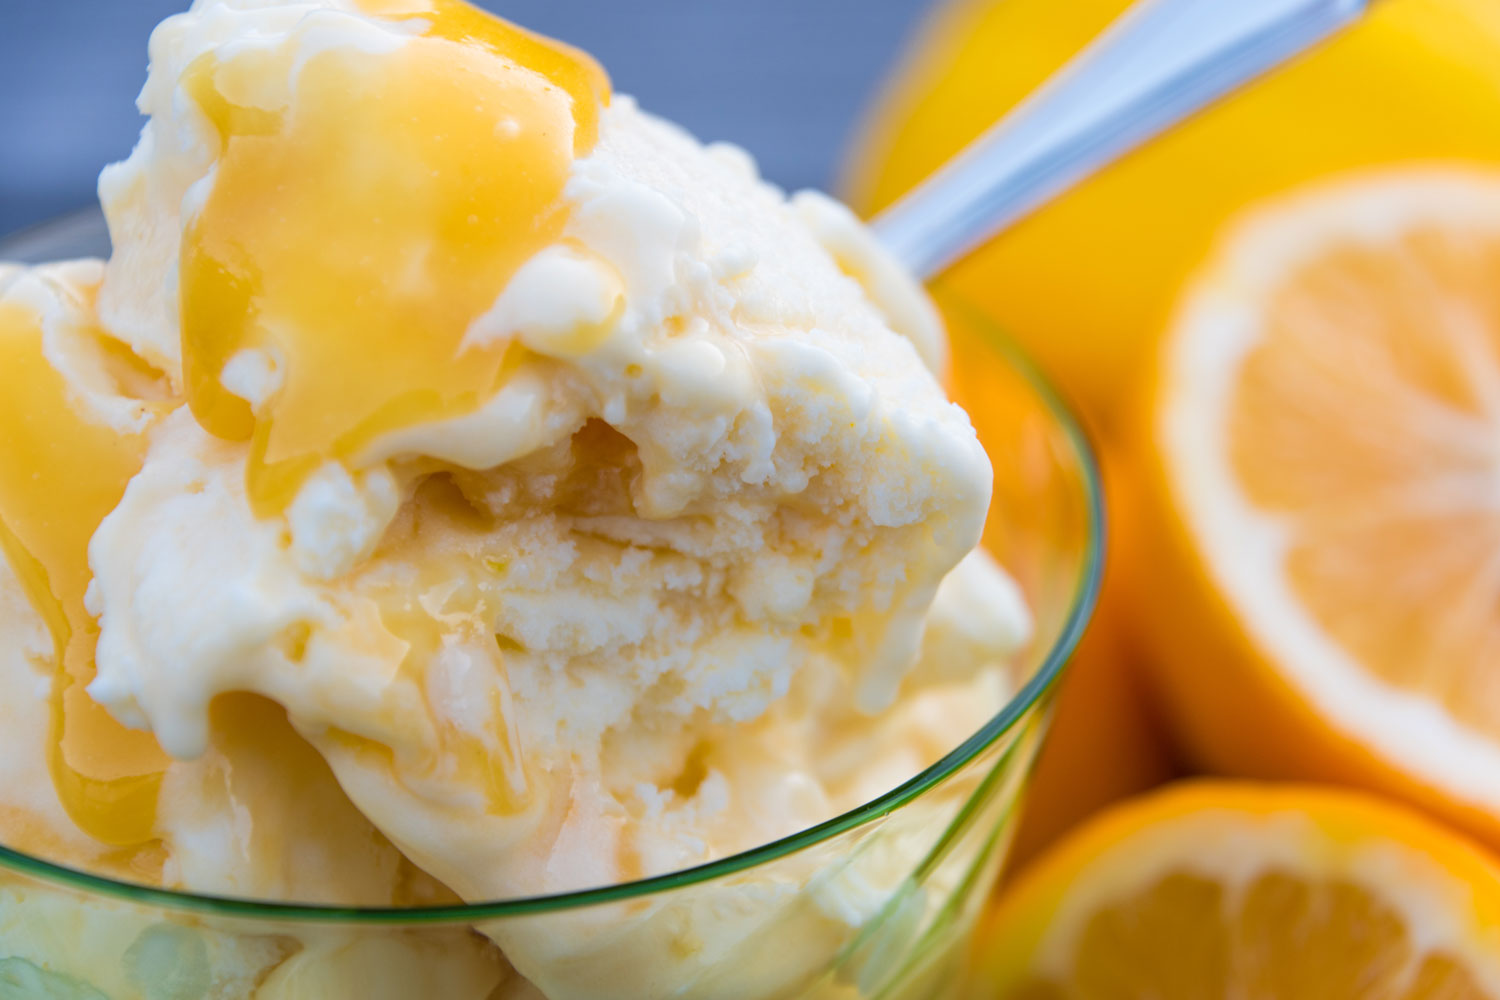 Pure NZ Lemon and Curd Ice Cream